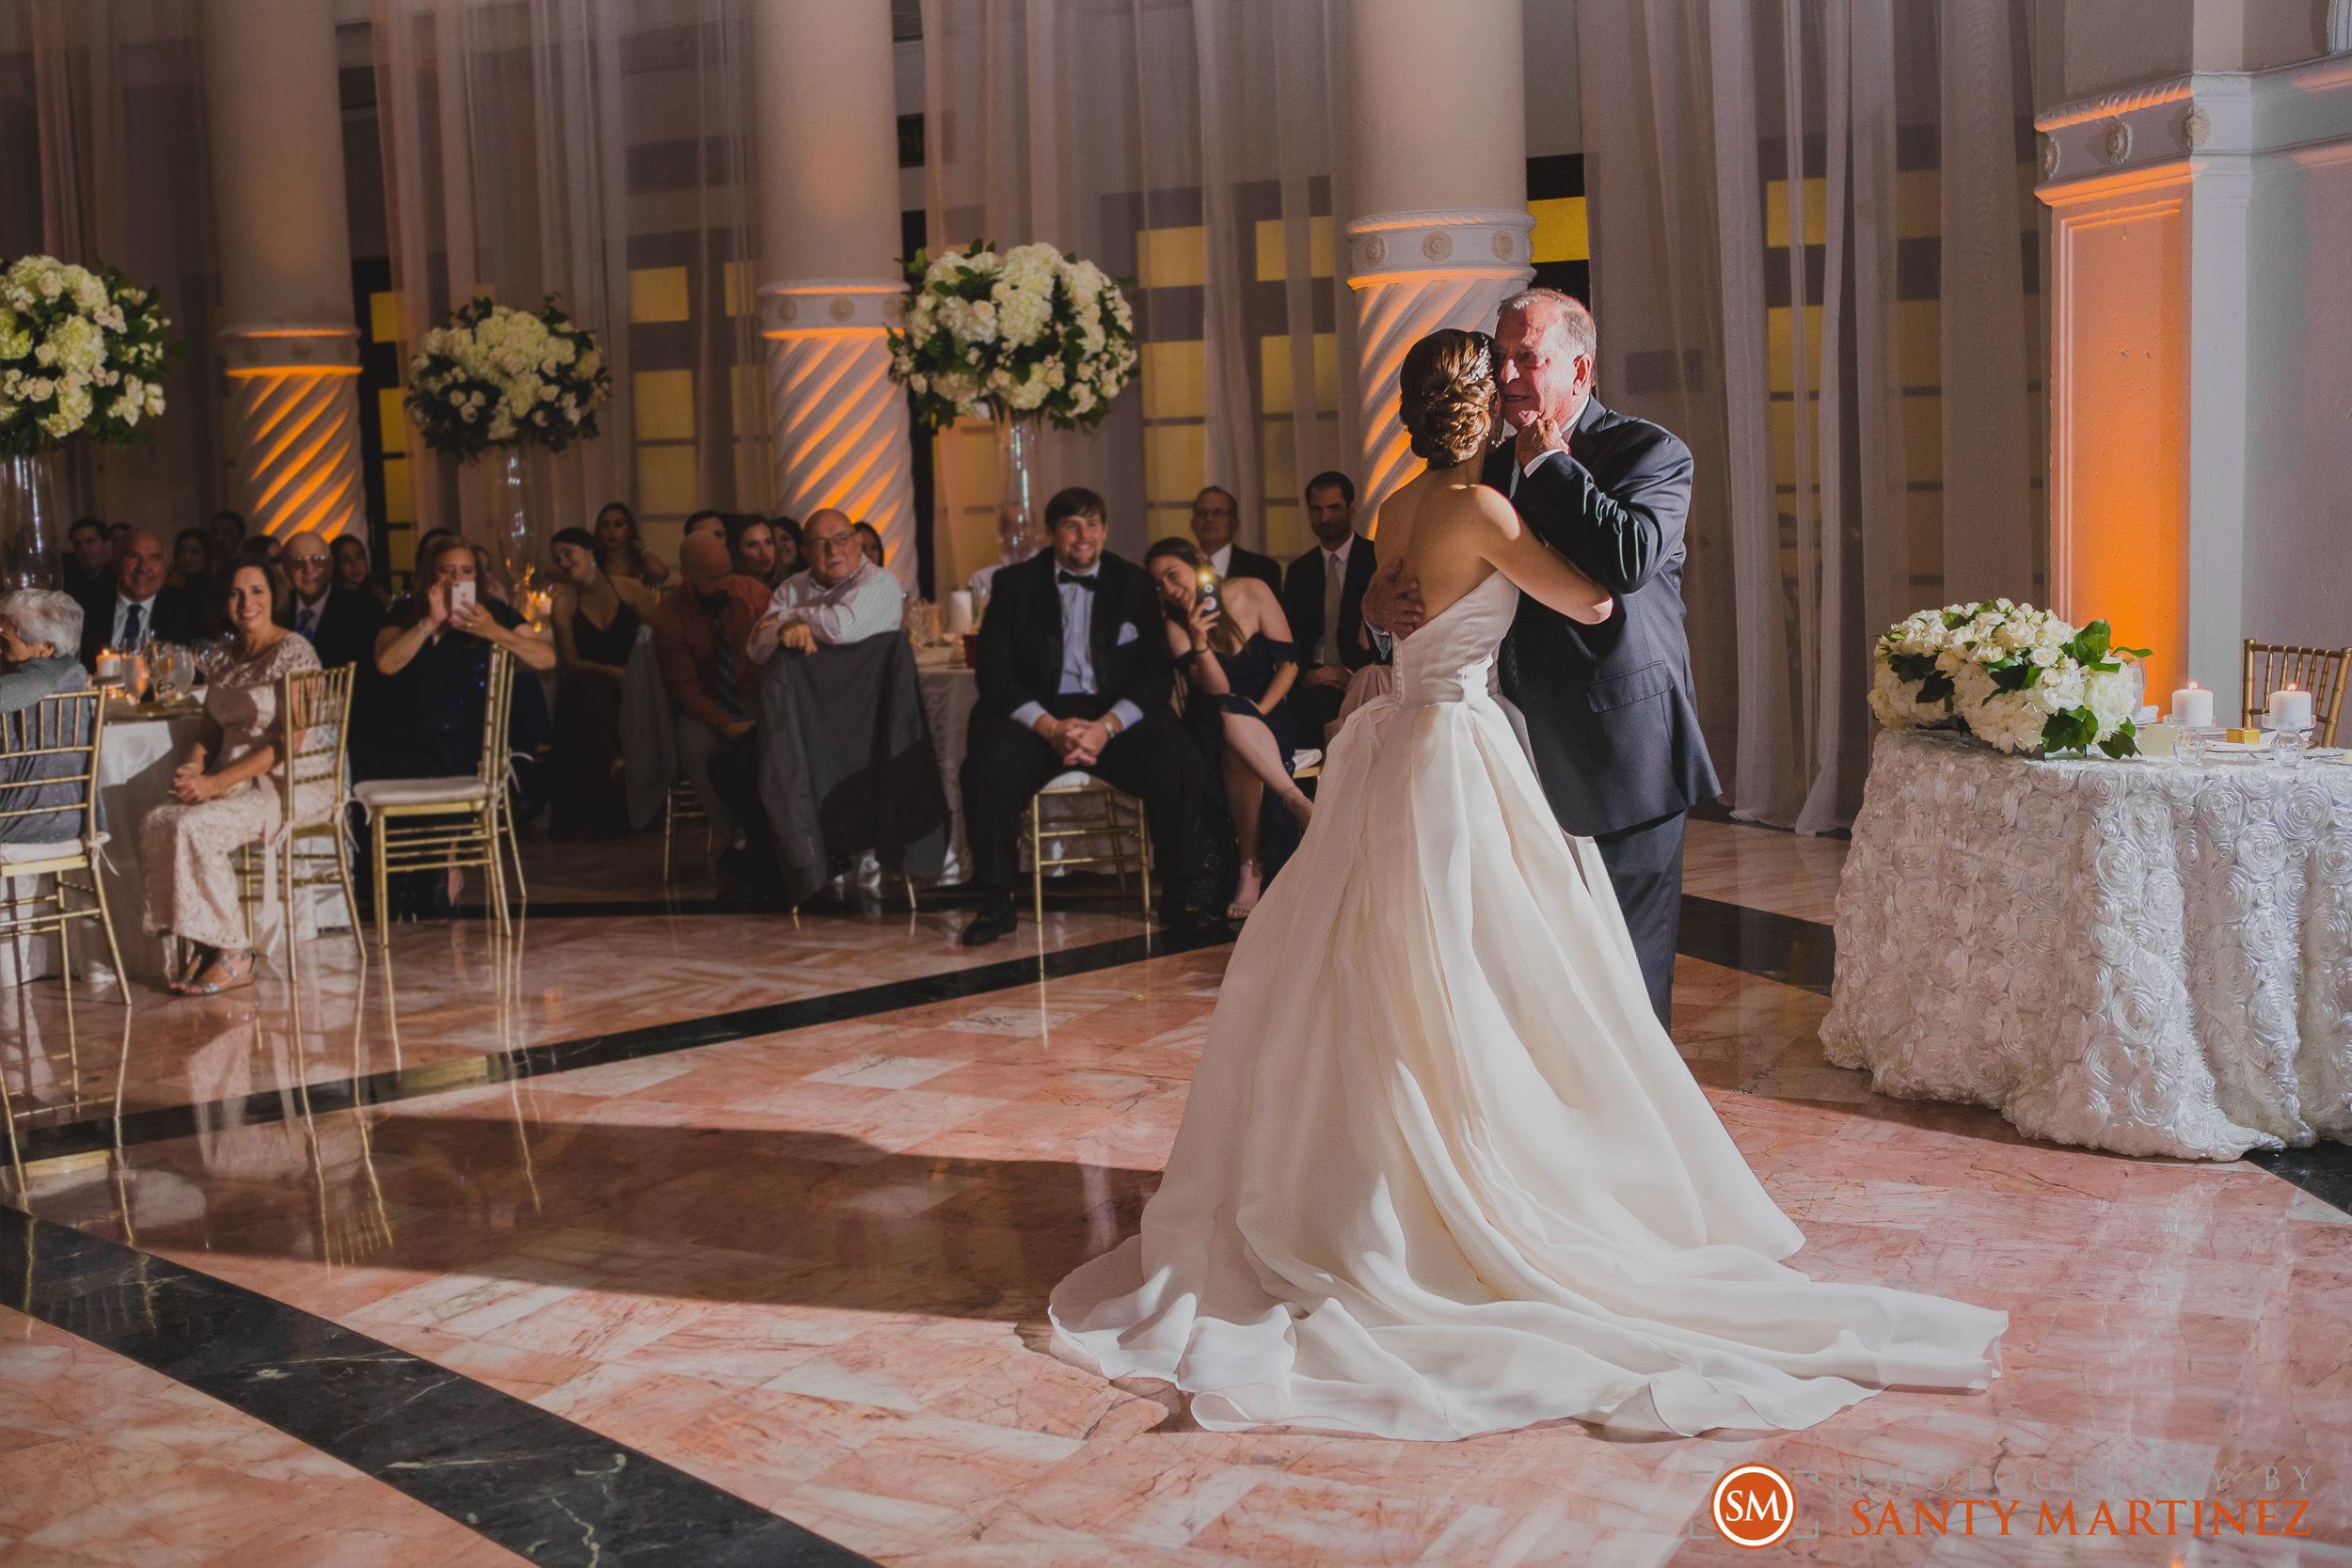 Wedding - Hotel Colonnade Coral Gables - Santy Martinez Photography-23.jpg